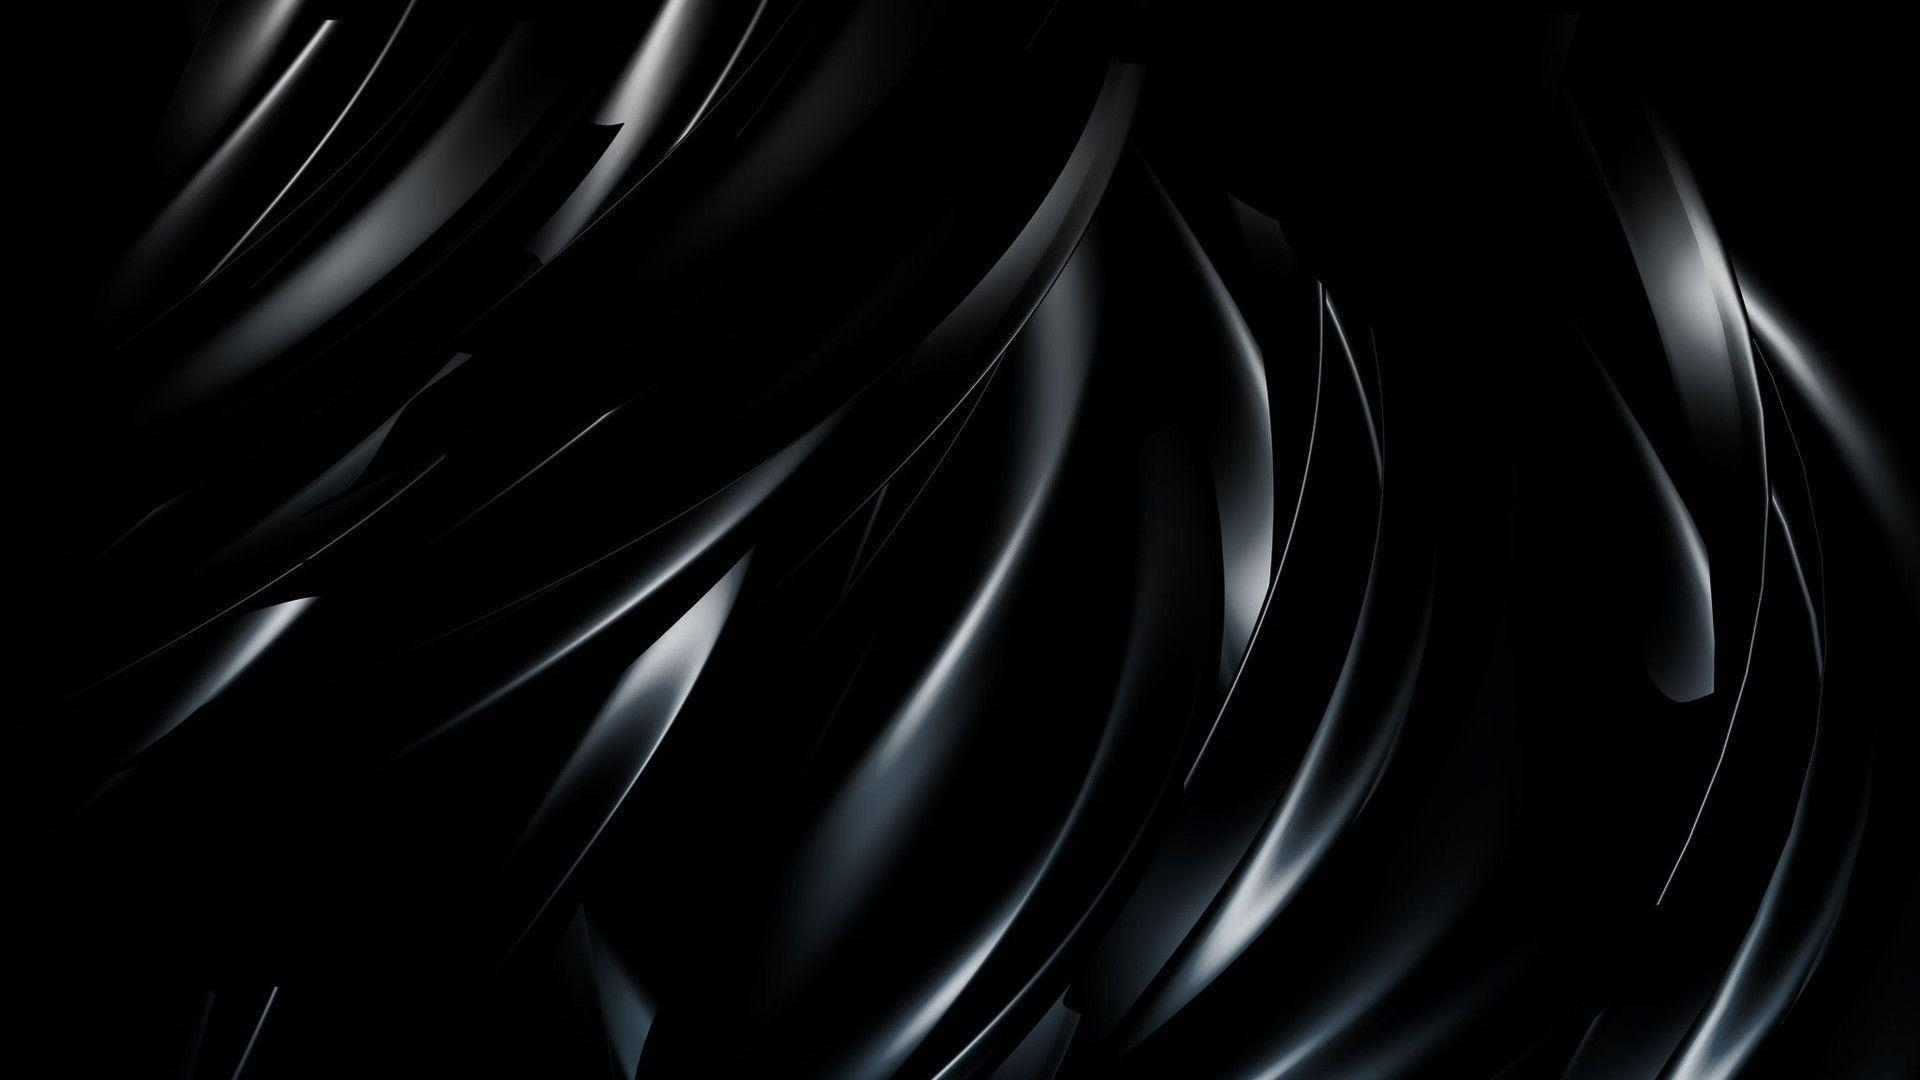 black wallpapers 1920x1080 - wallpaper cave